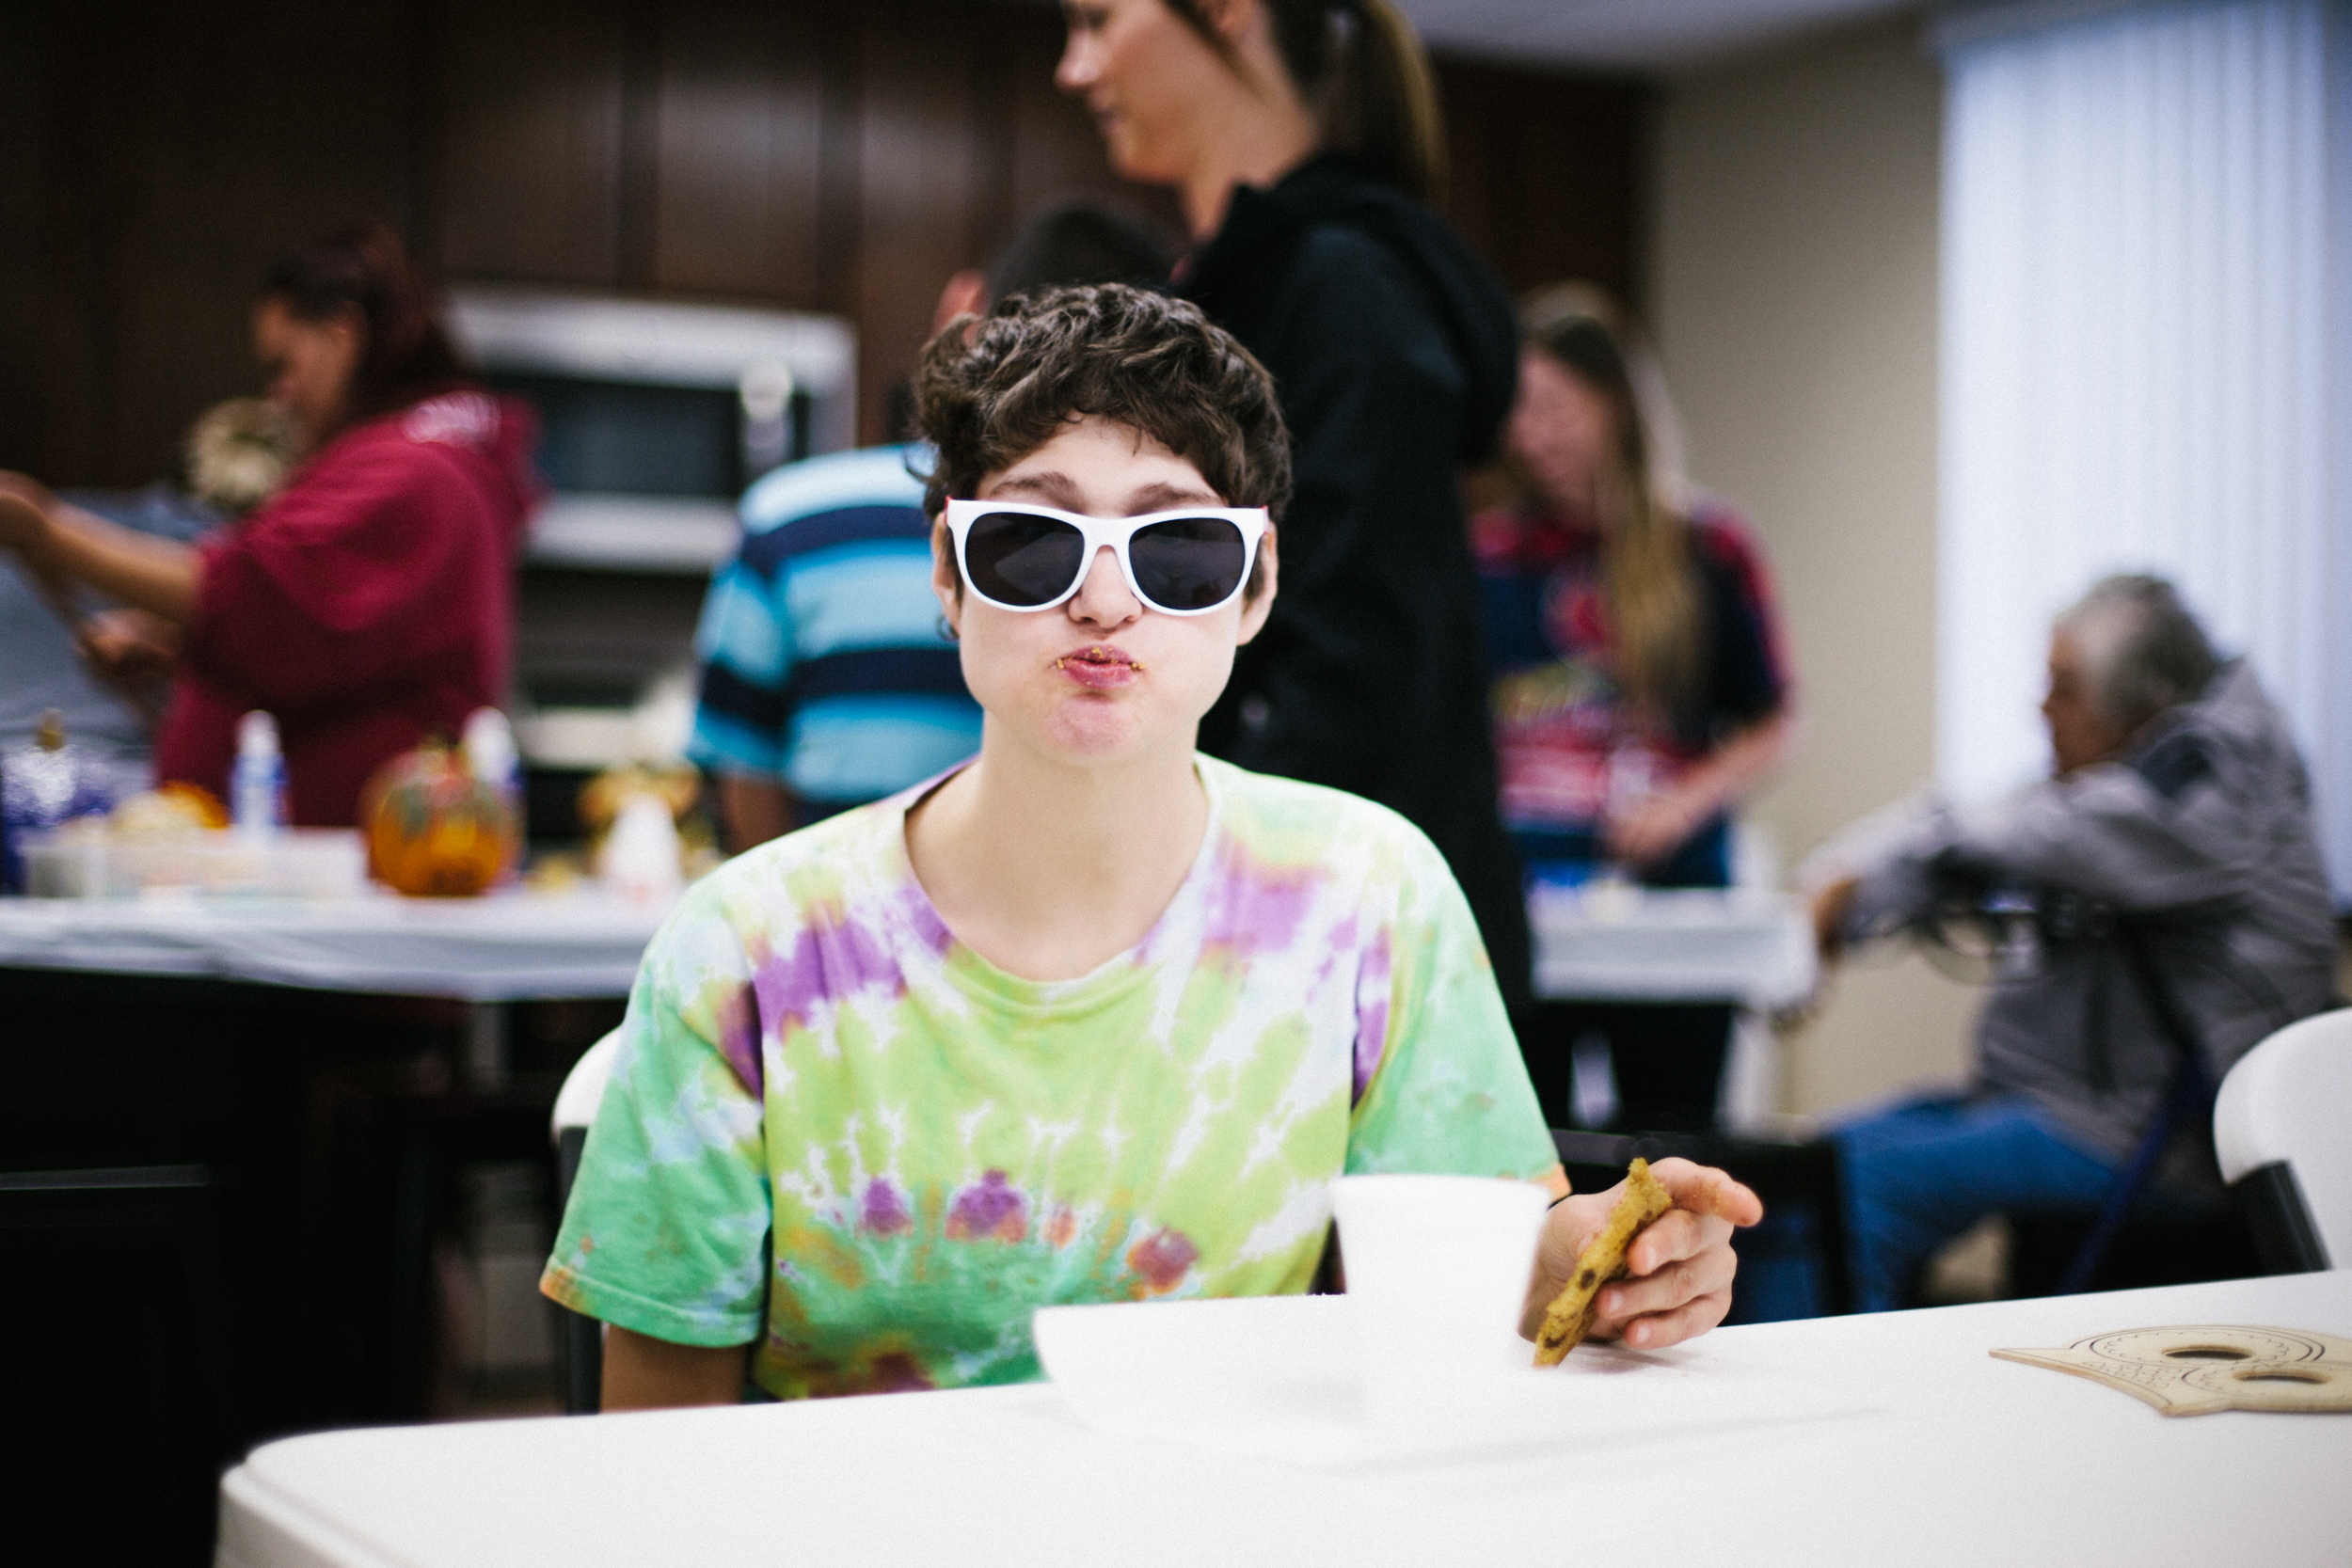 Success Stories - Nova Center of the Ozarks strives to make possible the potential for positive change in the quality of life for every individual with a developmental disability.